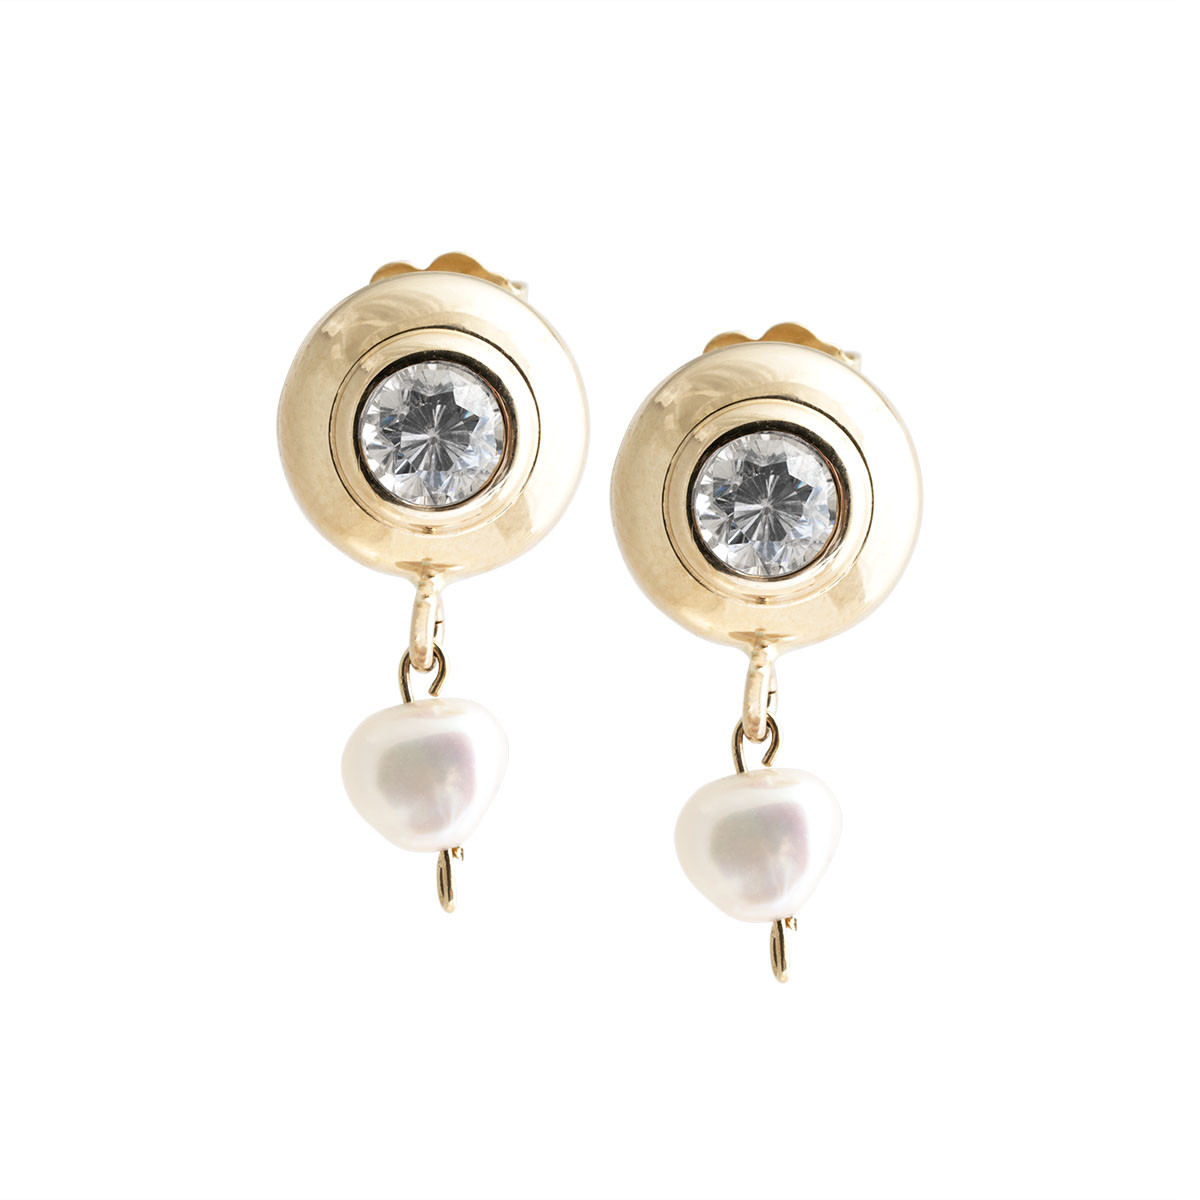 Vintage Cubic Zirconia & Pearl Drop Earrings